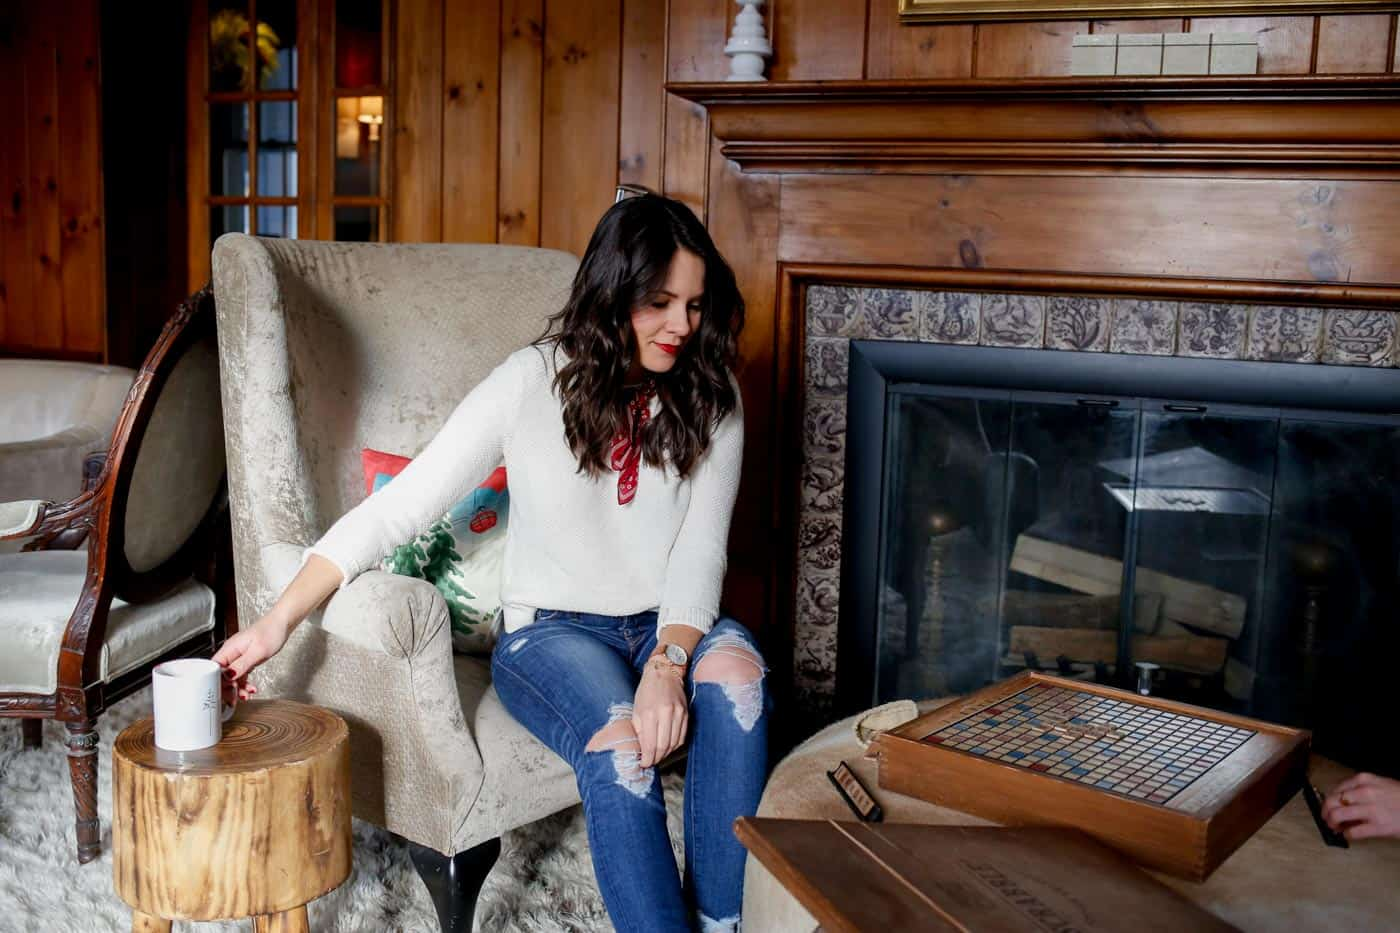 scrabble, game night, things to do in Vermont, cozy winter fireplace - My Style Vita @mystylevita